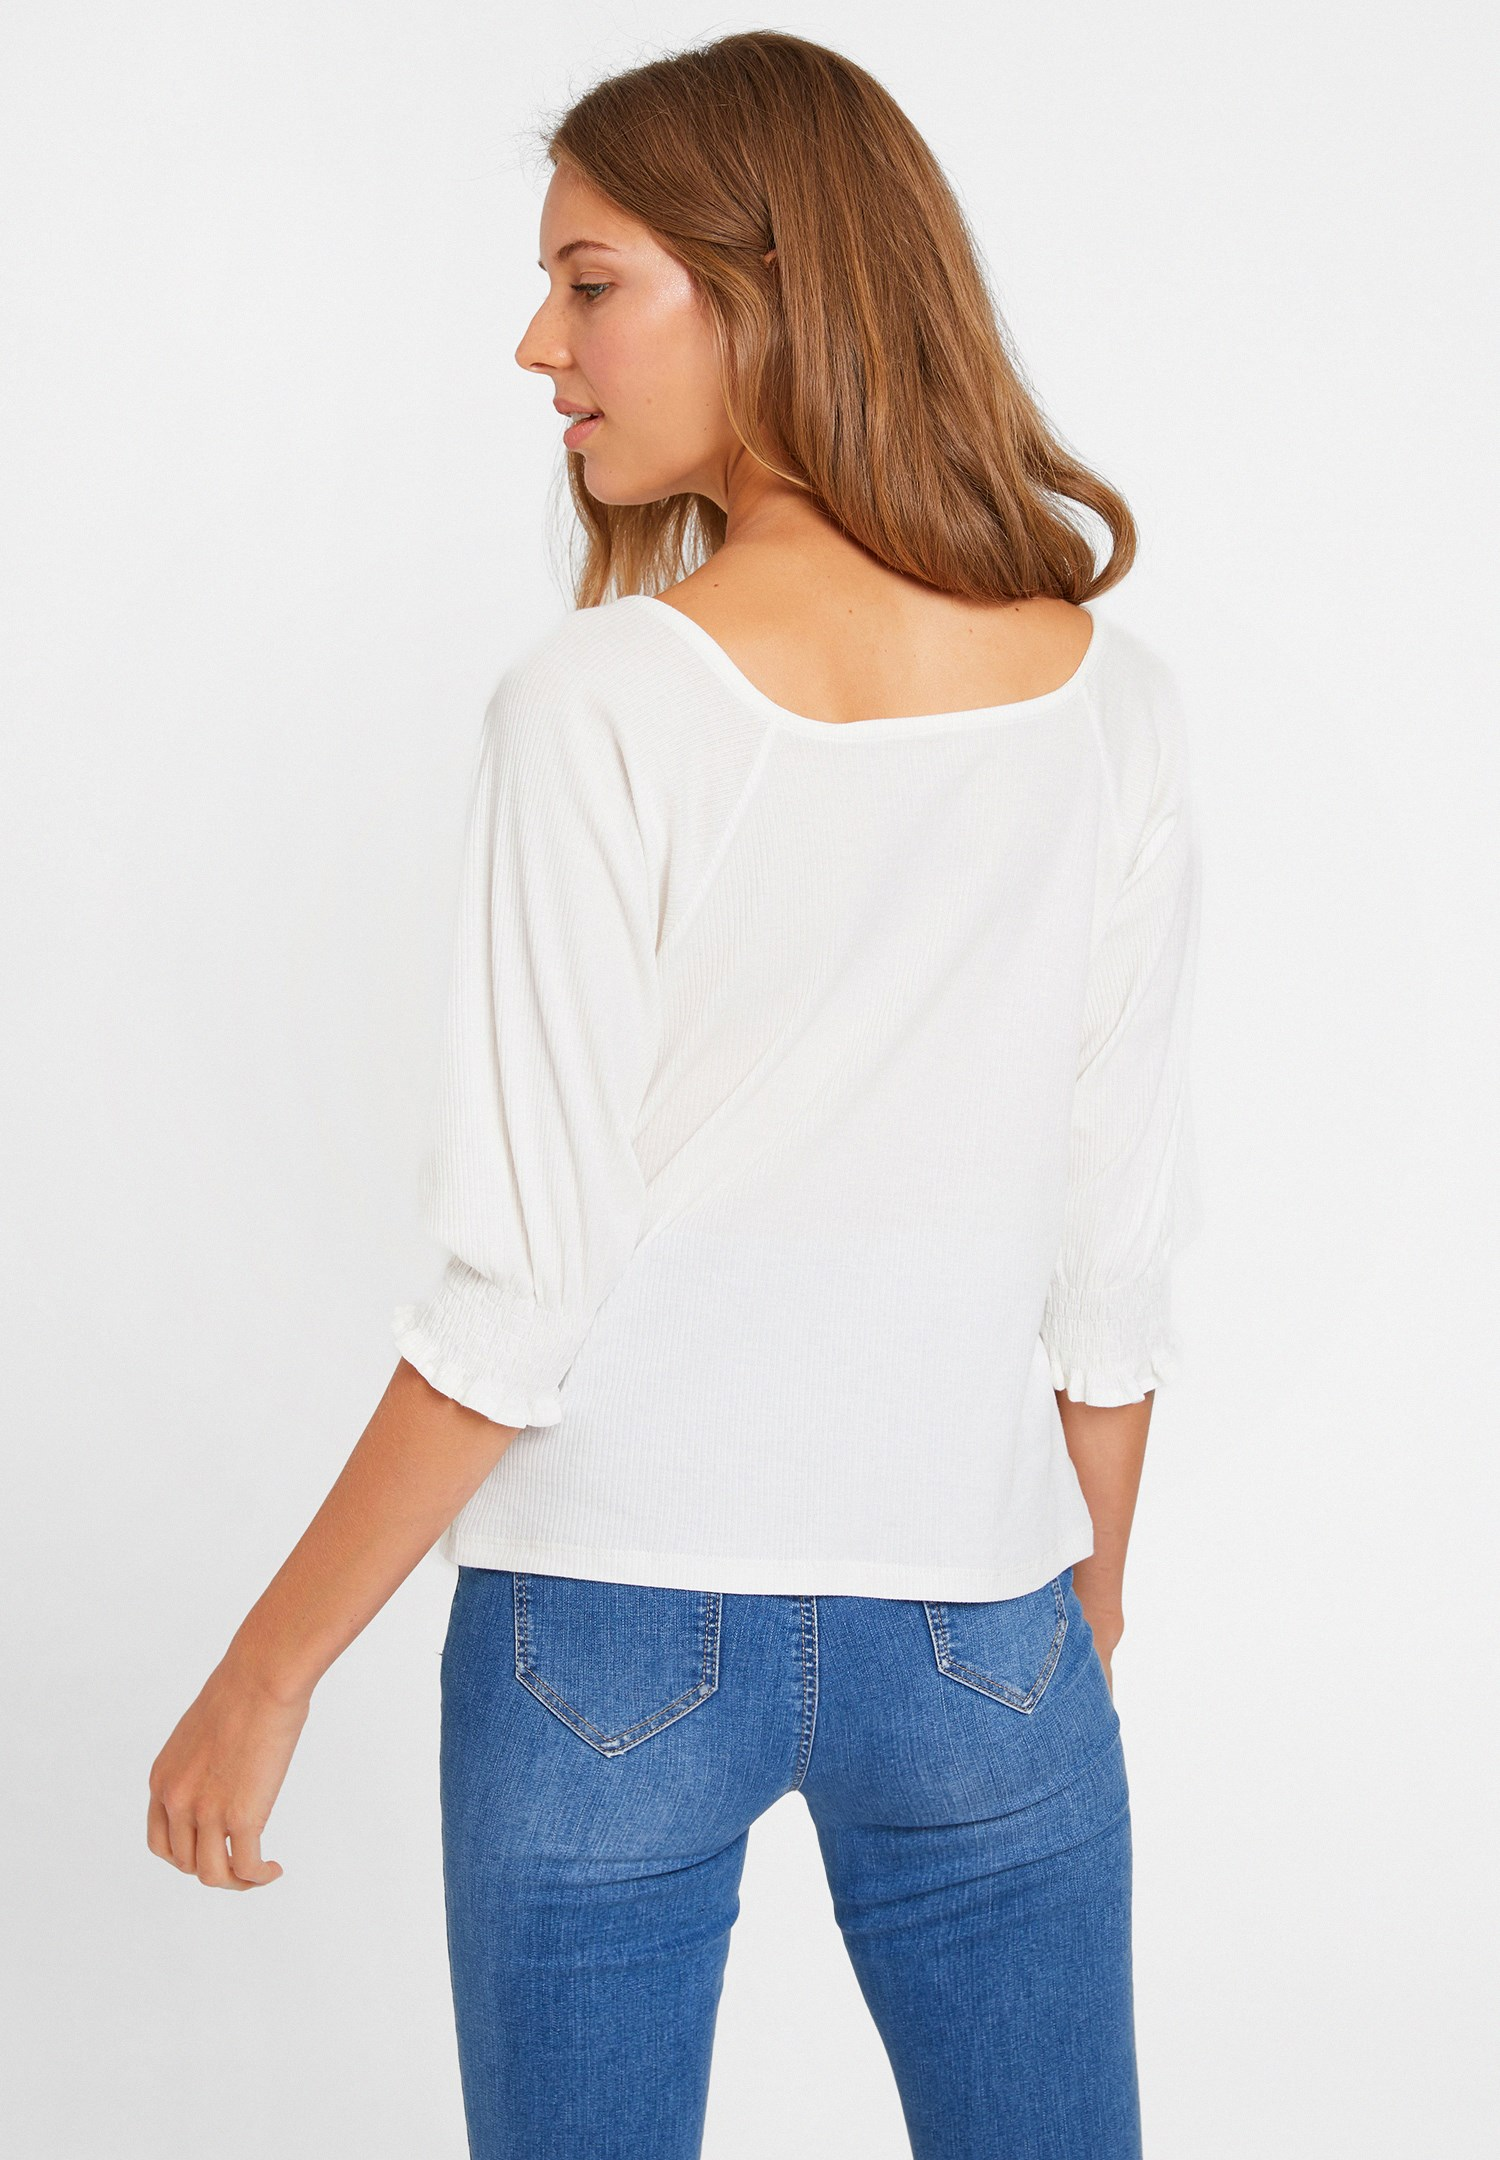 Women Cream V Neck Blouse with Embroidery